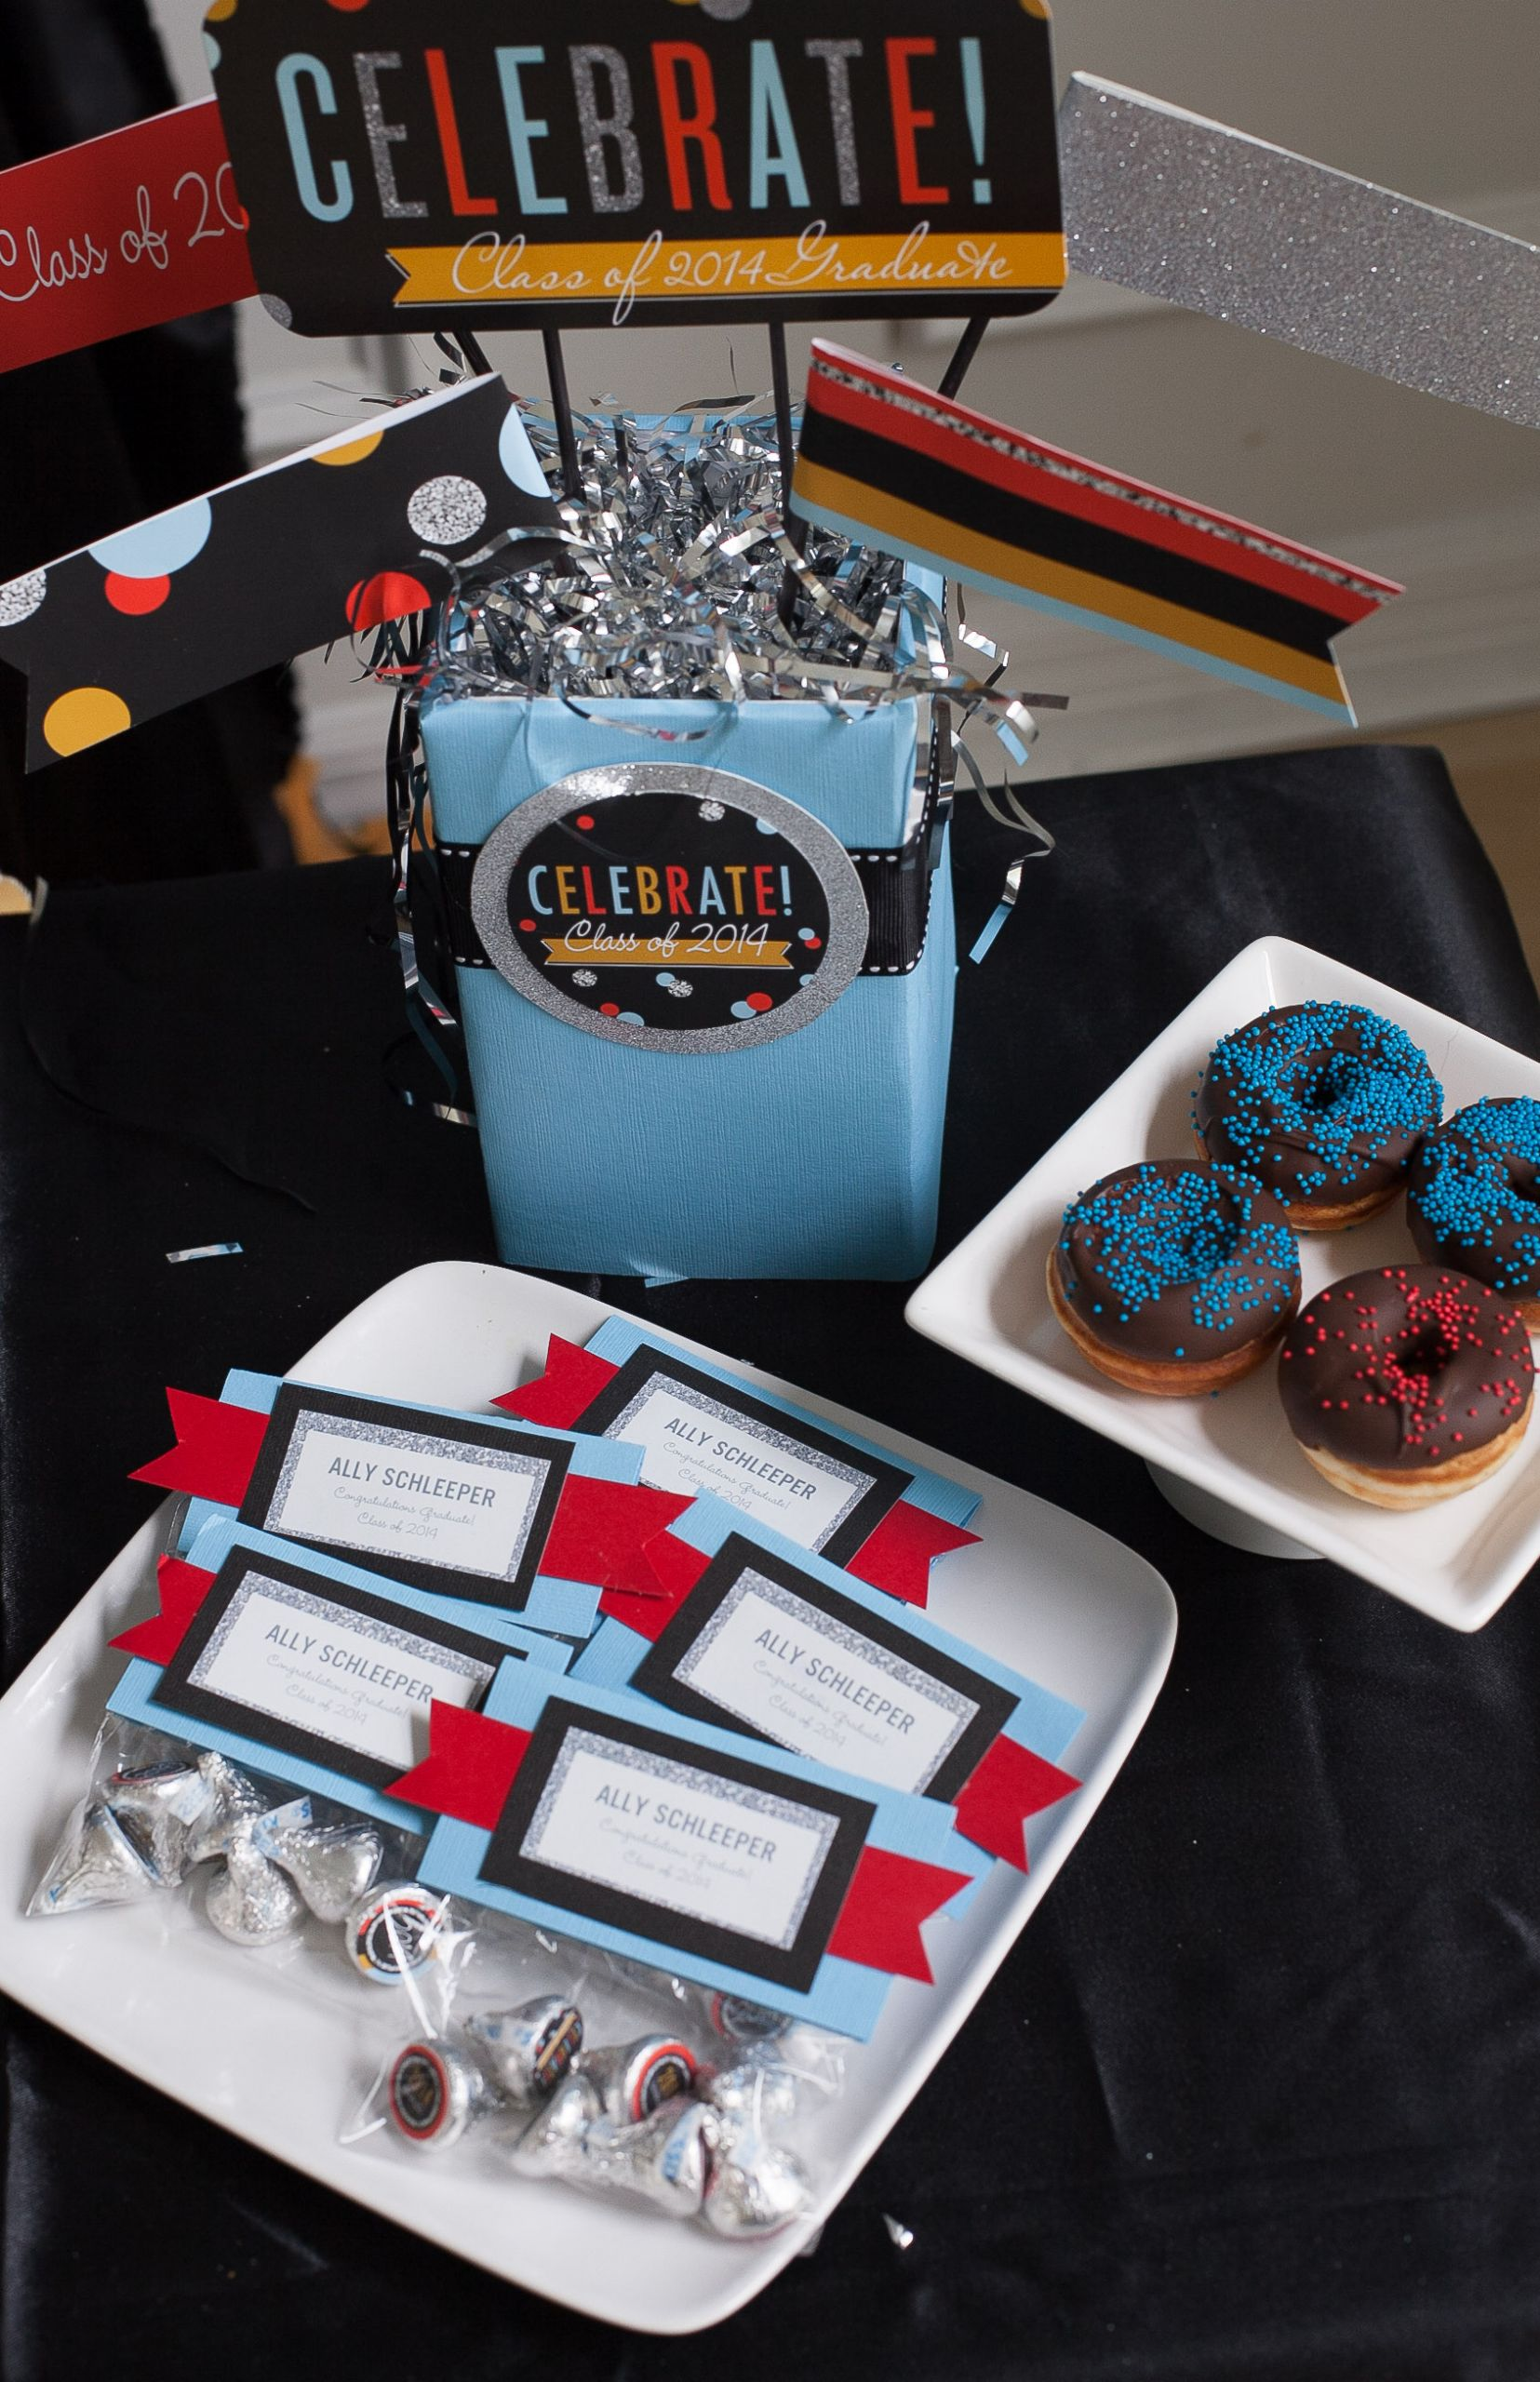 Party Favor Ideas For Graduation Party  Graduation Party Ideas Inspiration and Free Printables